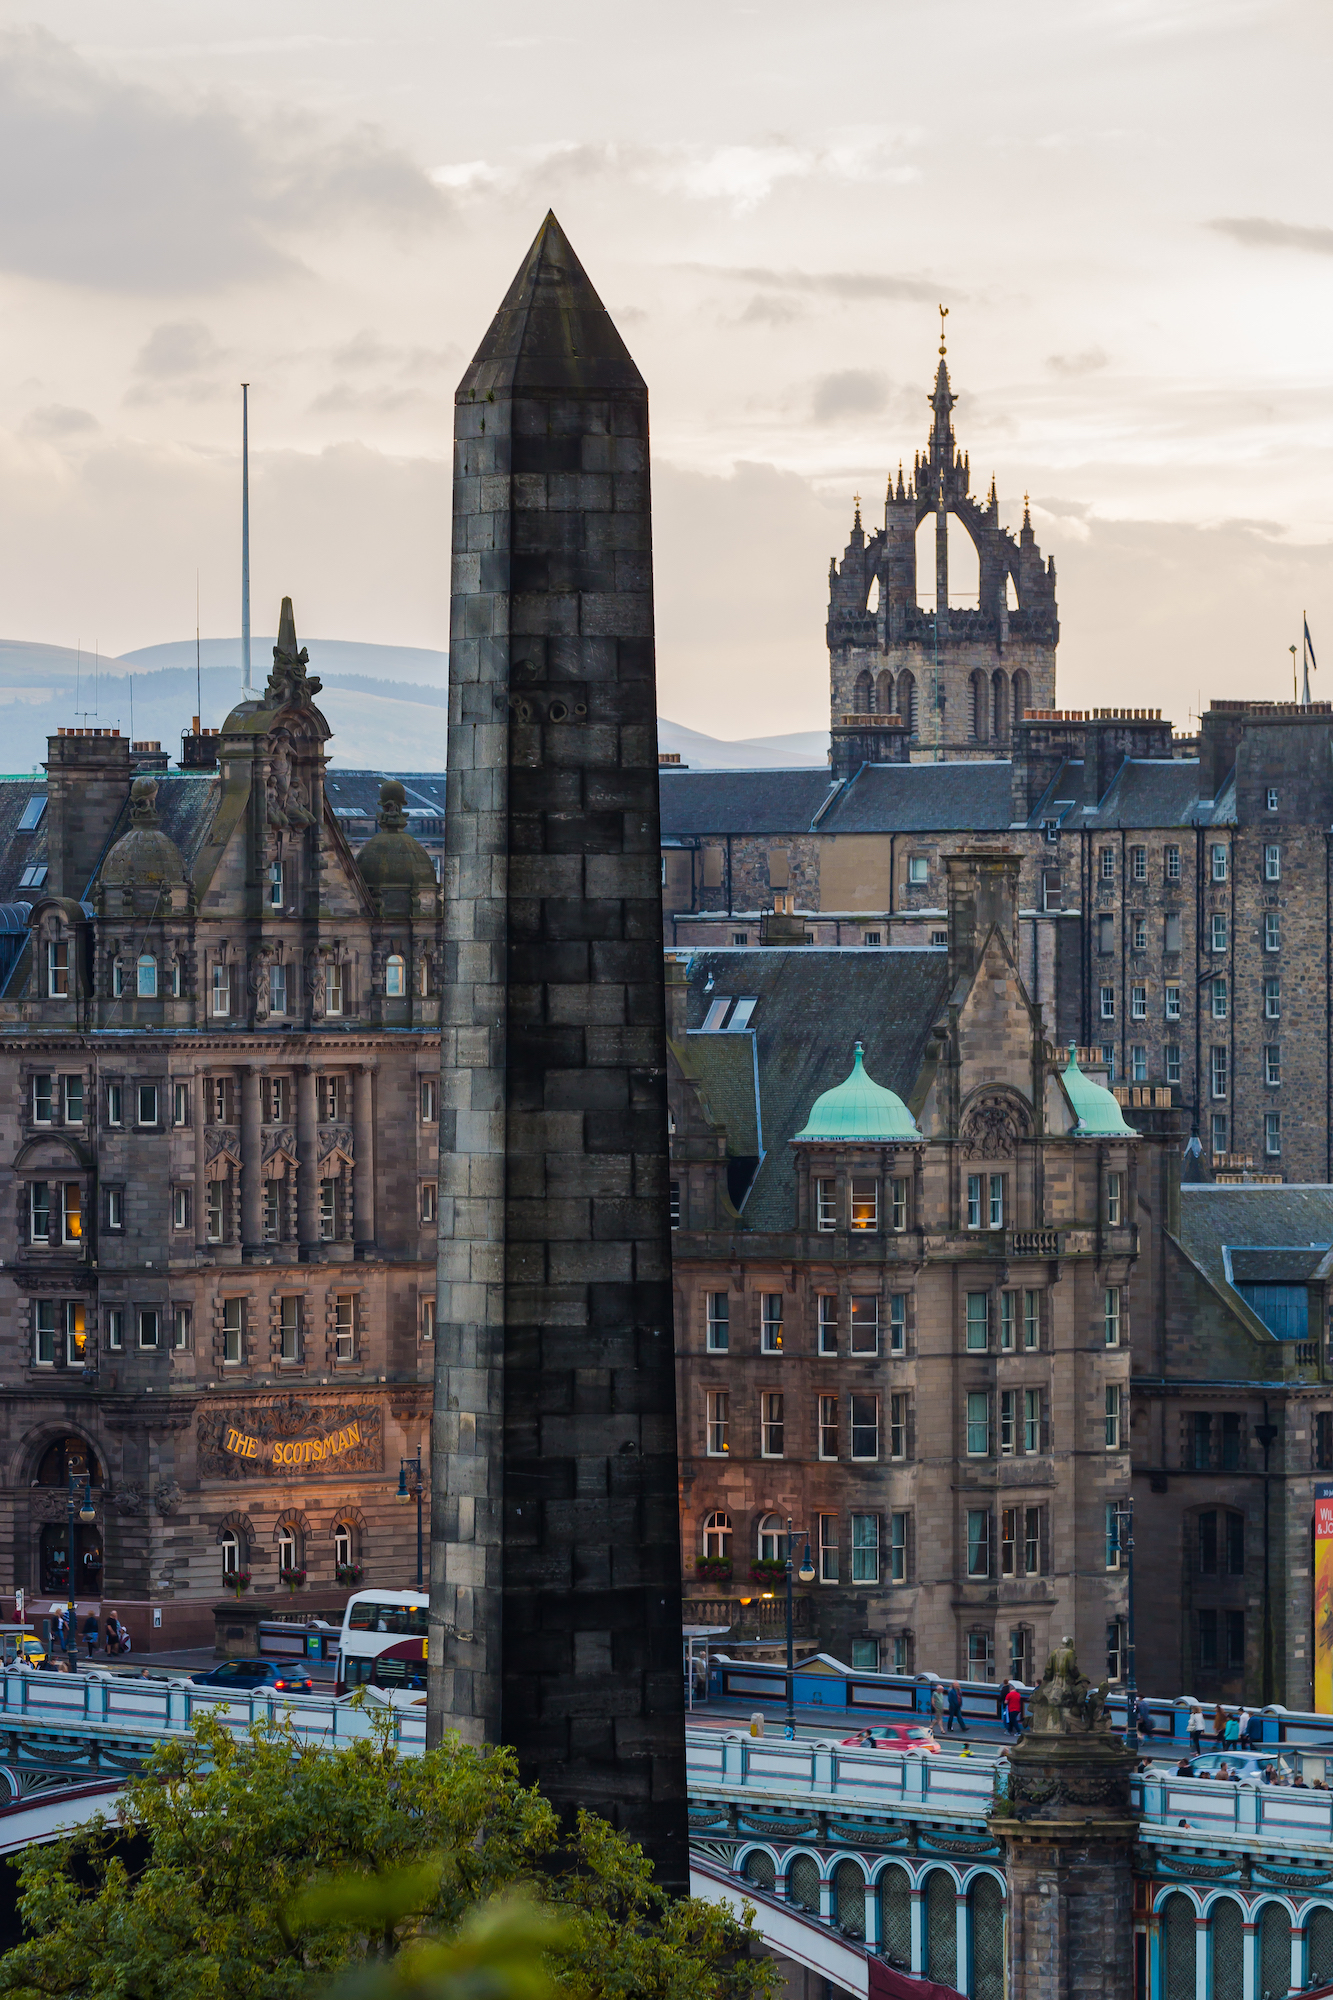 (403) The Political Martyrs Monument, Old Calton Burial Ground, Calton Hill, The Scotsman Hotel, St Giles' Cathedral Spire, Edinburgh, Scotland.jpg